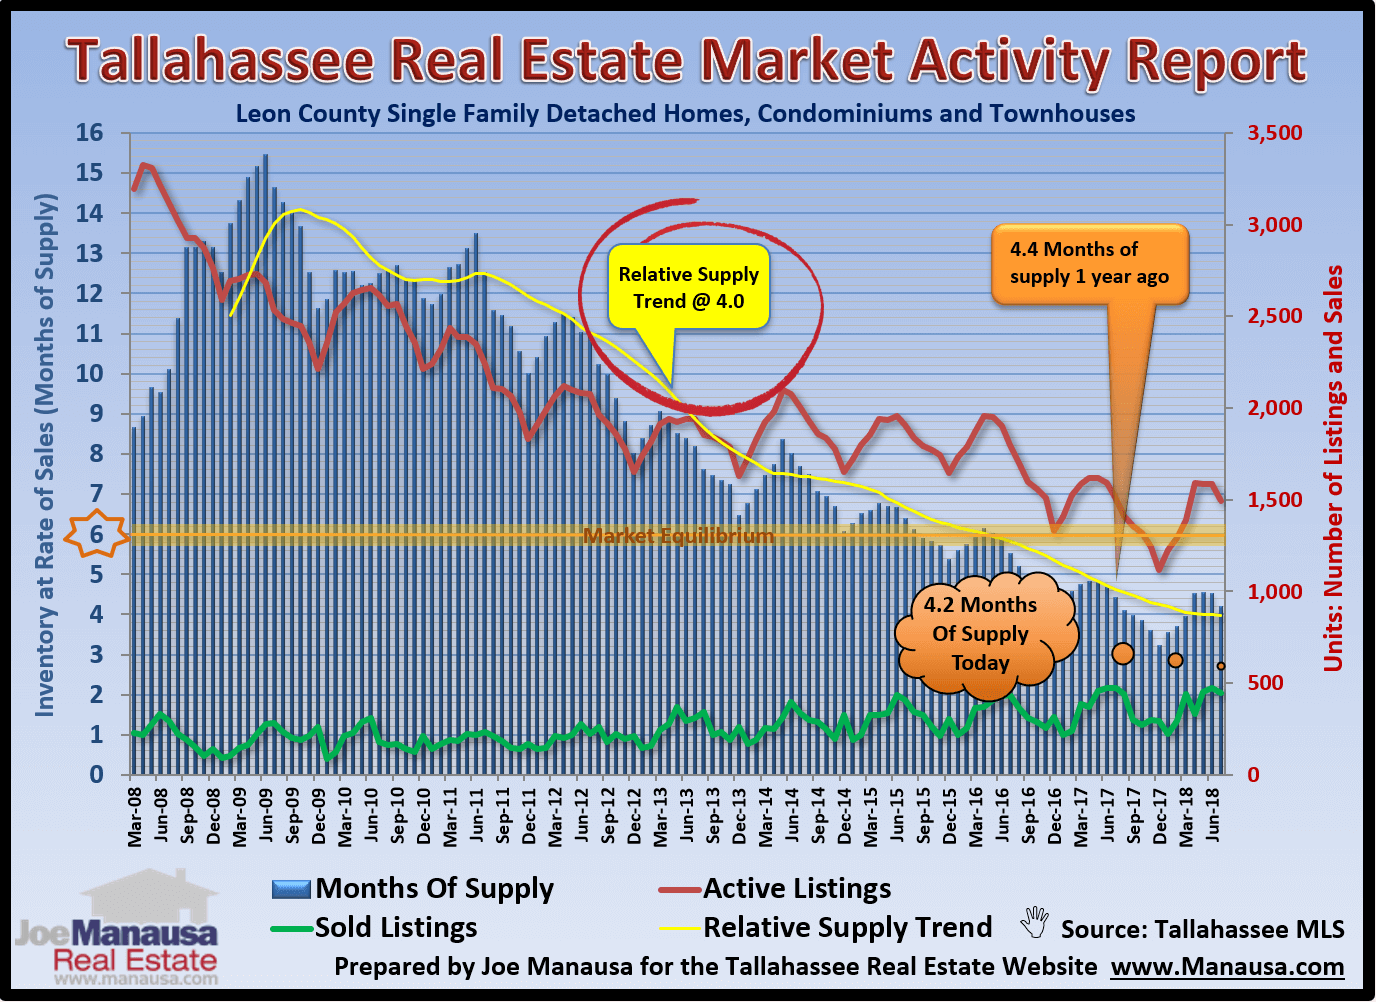 If inventories are on the rise, and demand is beginning to fall, then we know that further production of new homes is going to created another housing bubble in the Tallahassee real estate market